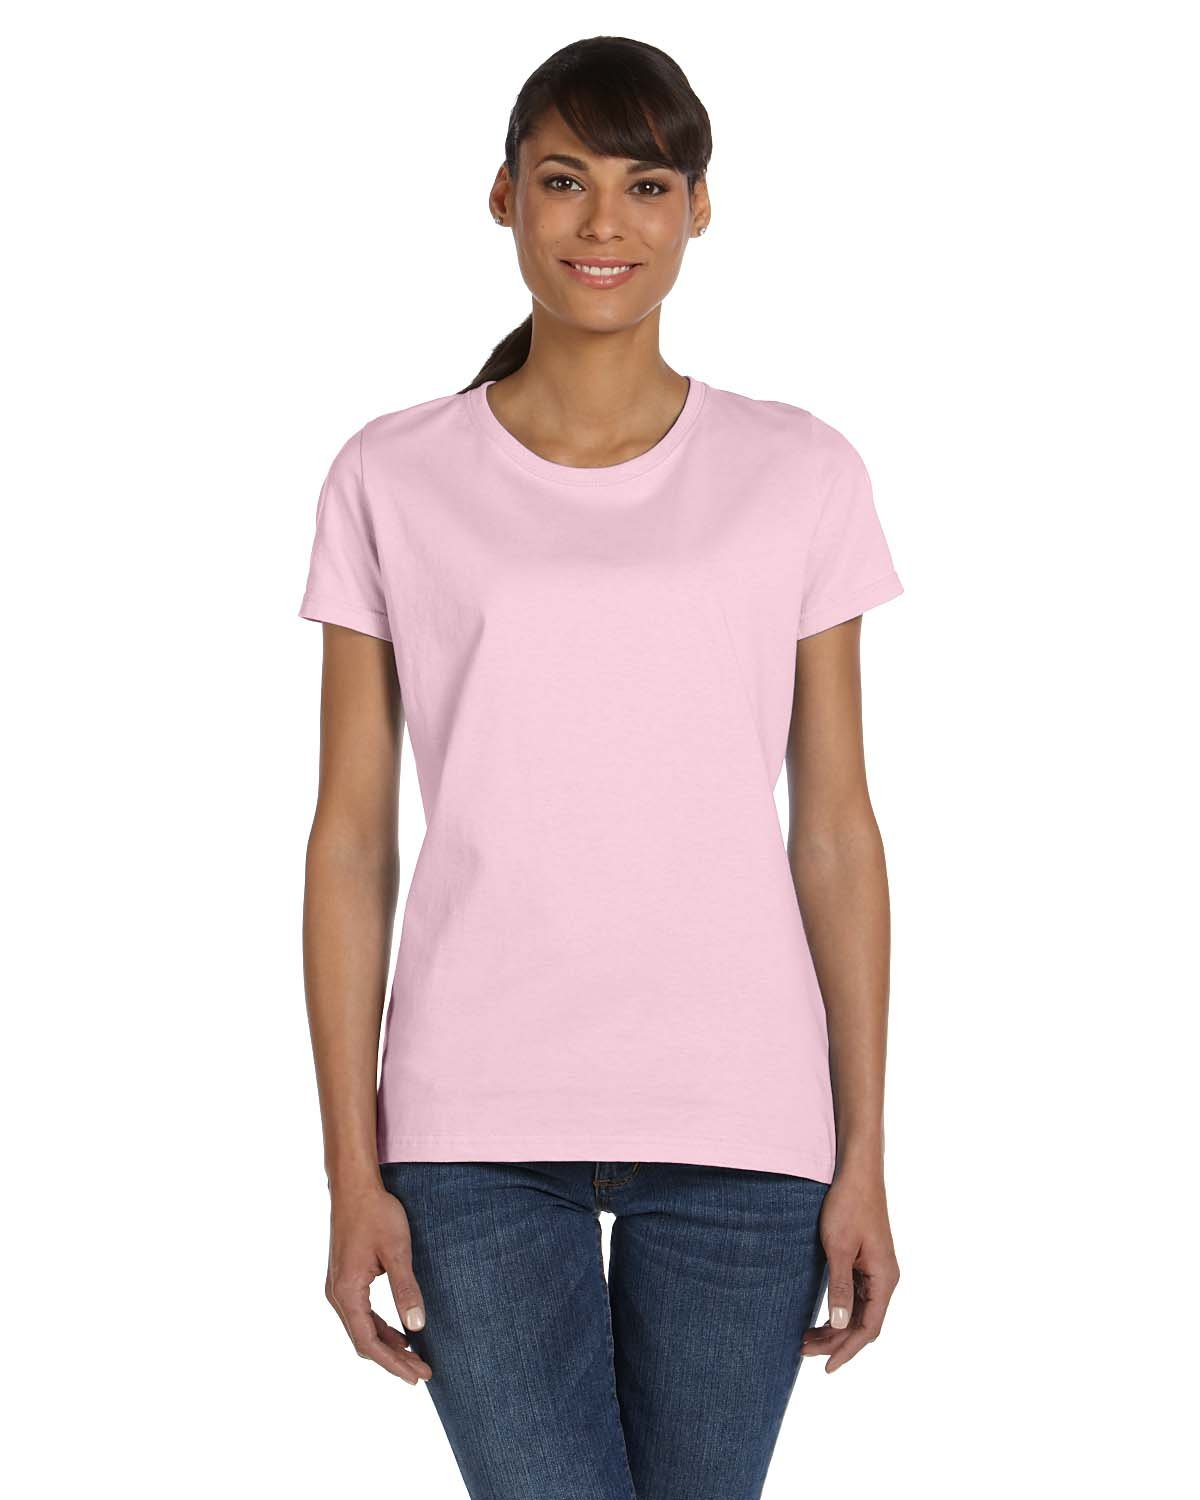 Fruit of the Loom Ladies' HD Cotton™ T-Shirt CLASSIC PINK